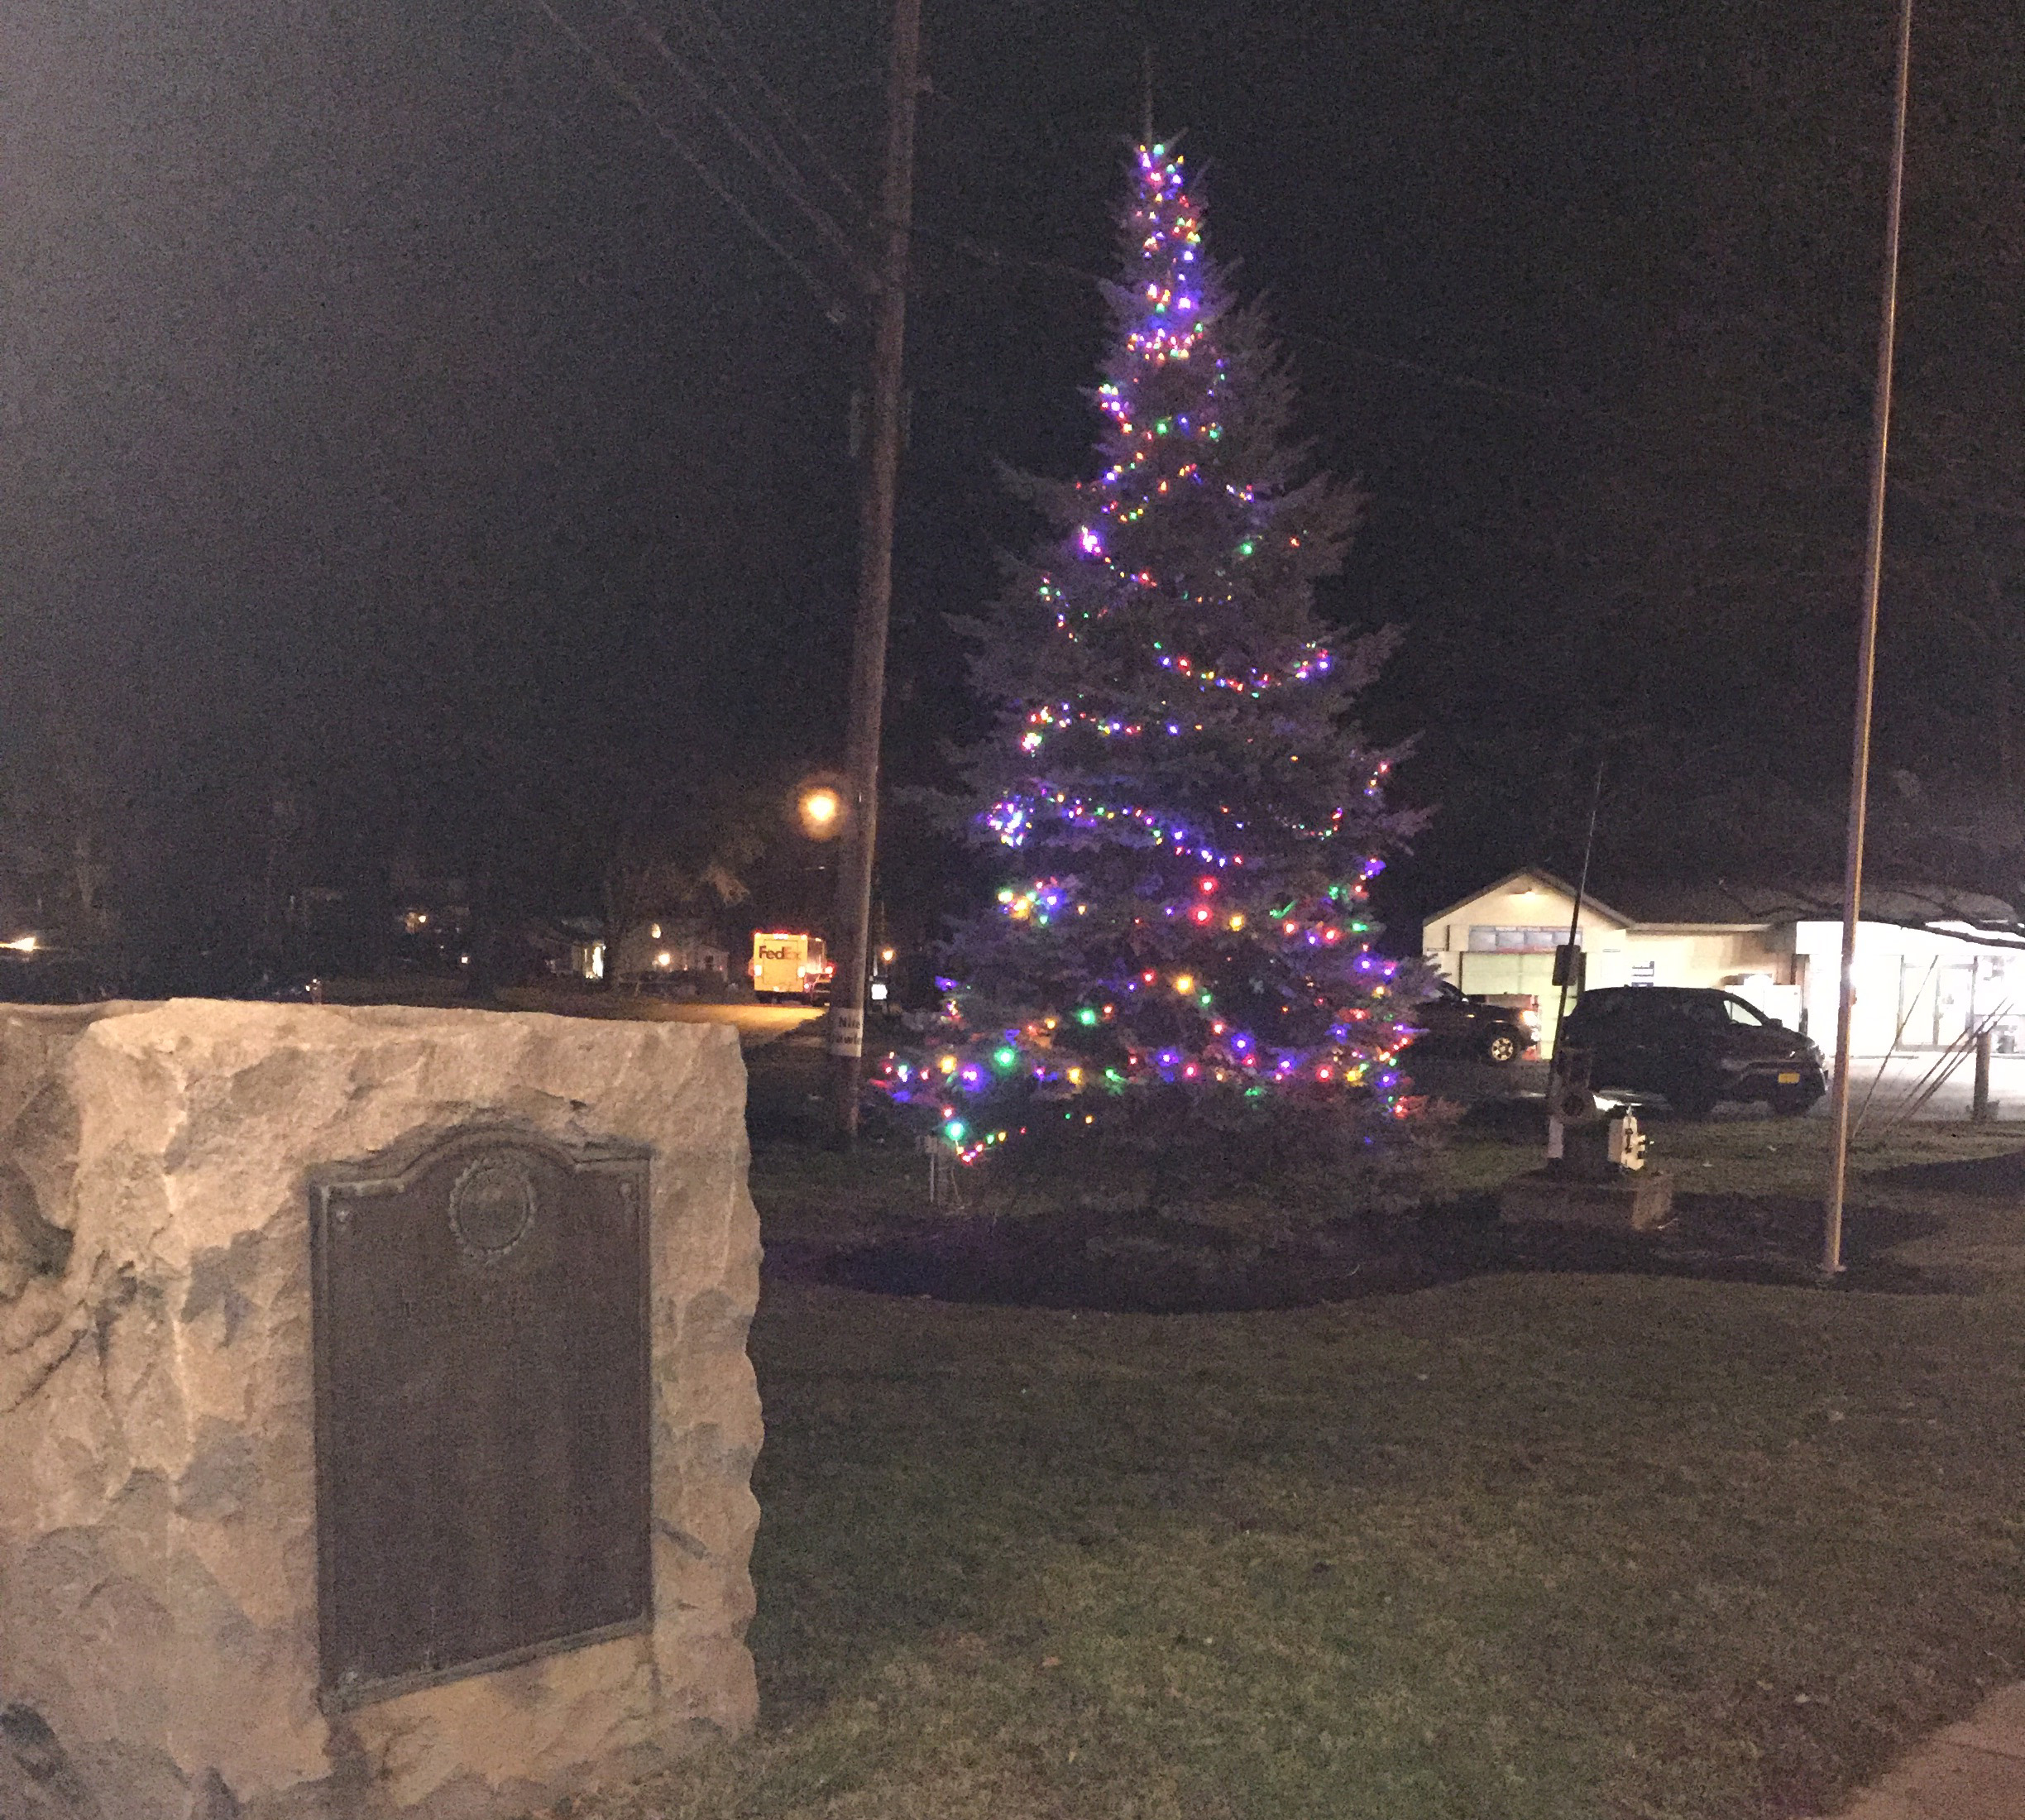 village christmas tree lit